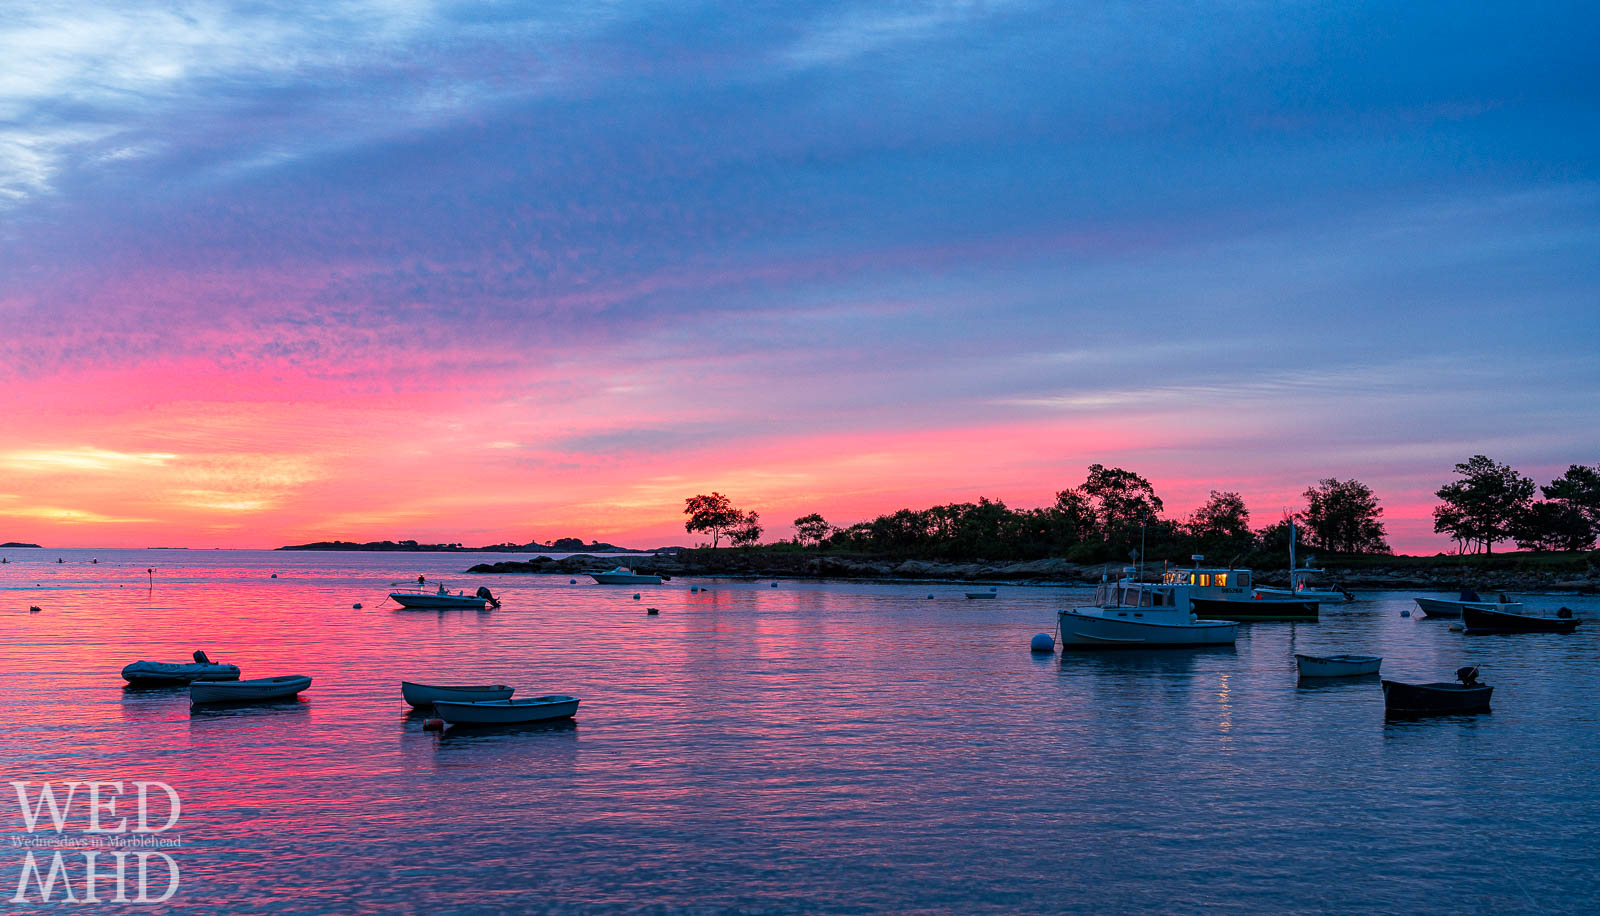 A pink sky reflects off the calm waters creating a beautiful First Harbor sunrise with one working boat ready to head out for the day